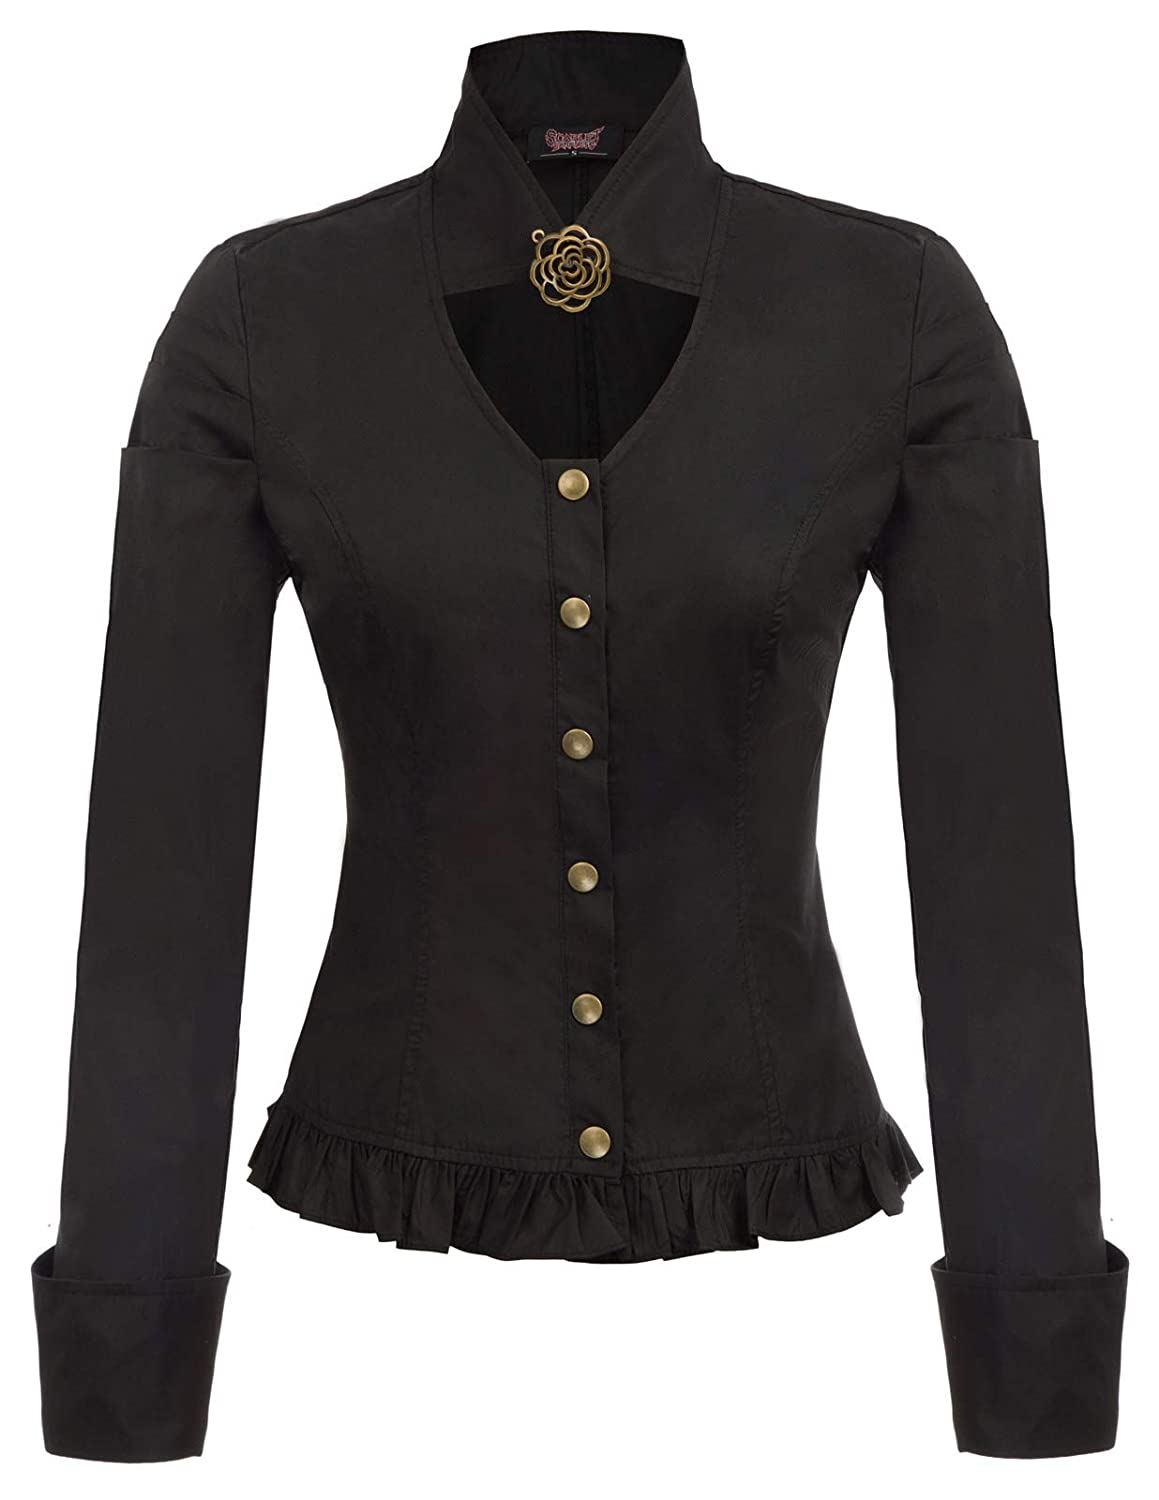 Steampunk Tops | Blouses, Shirts Women Steampunk Victorian Tops Stand Collar Button Placket Brooch Blouse S-2XL $27.99 AT vintagedancer.com